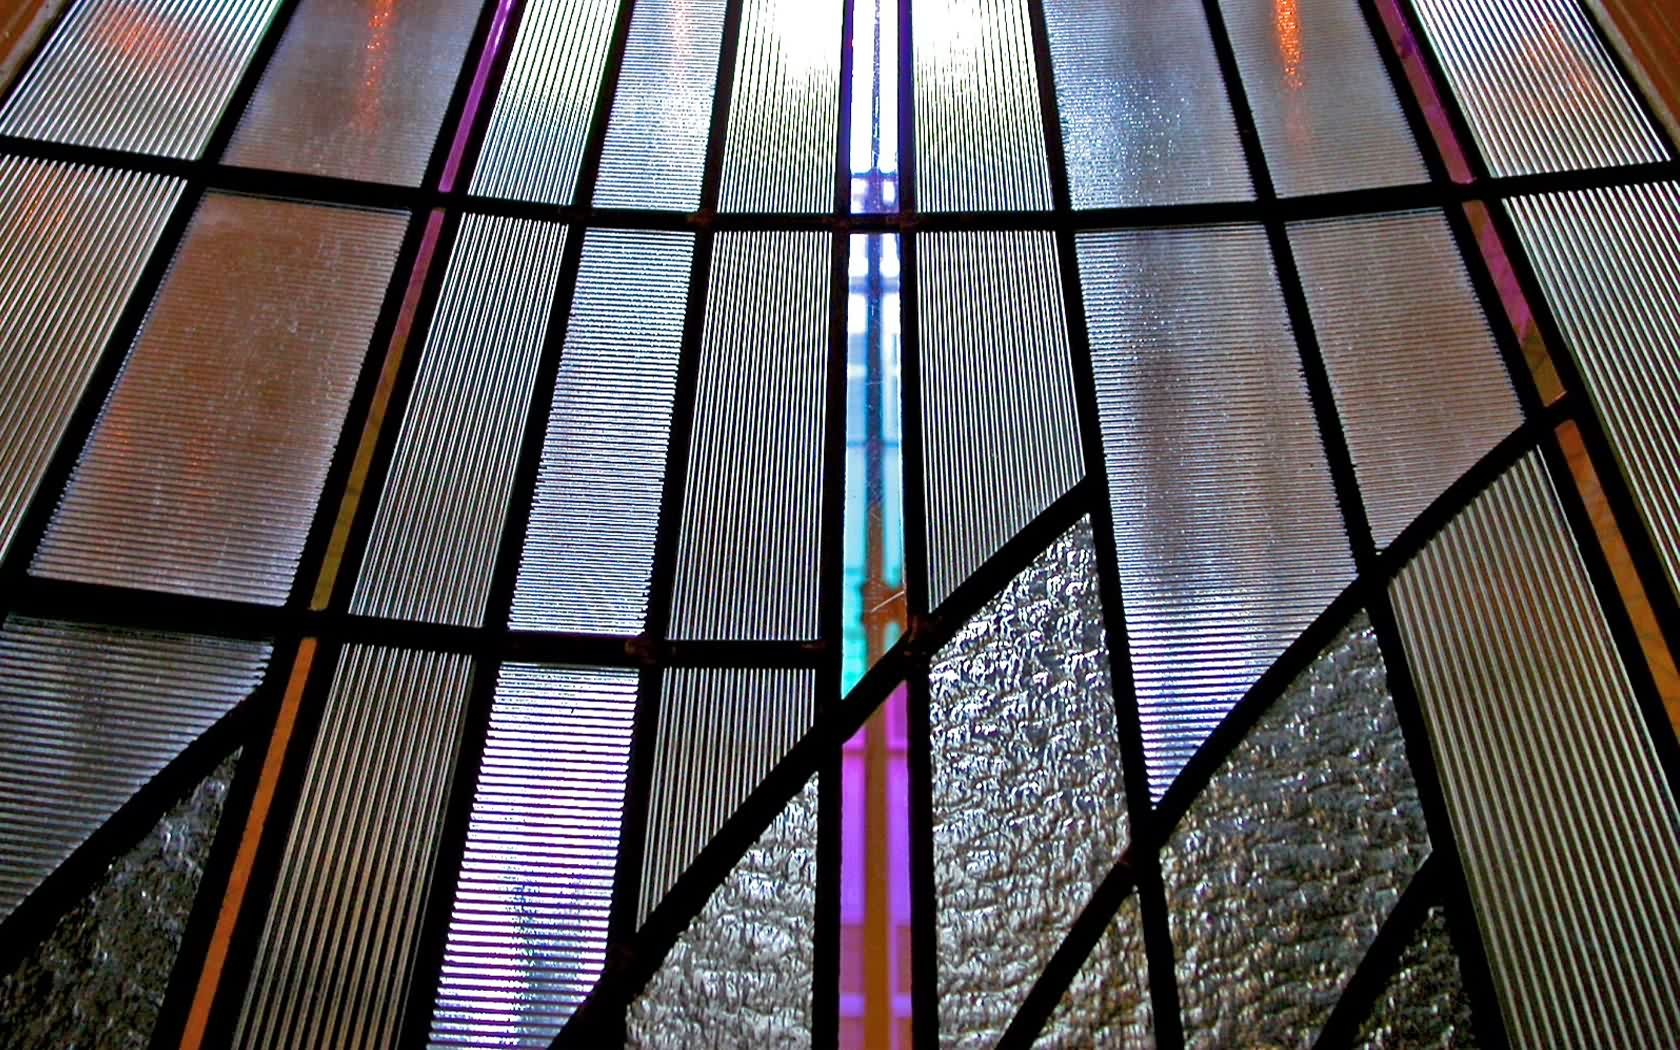 Light maximisation glass qualities to enhance/reflect light on Art Deco Stained Glass window